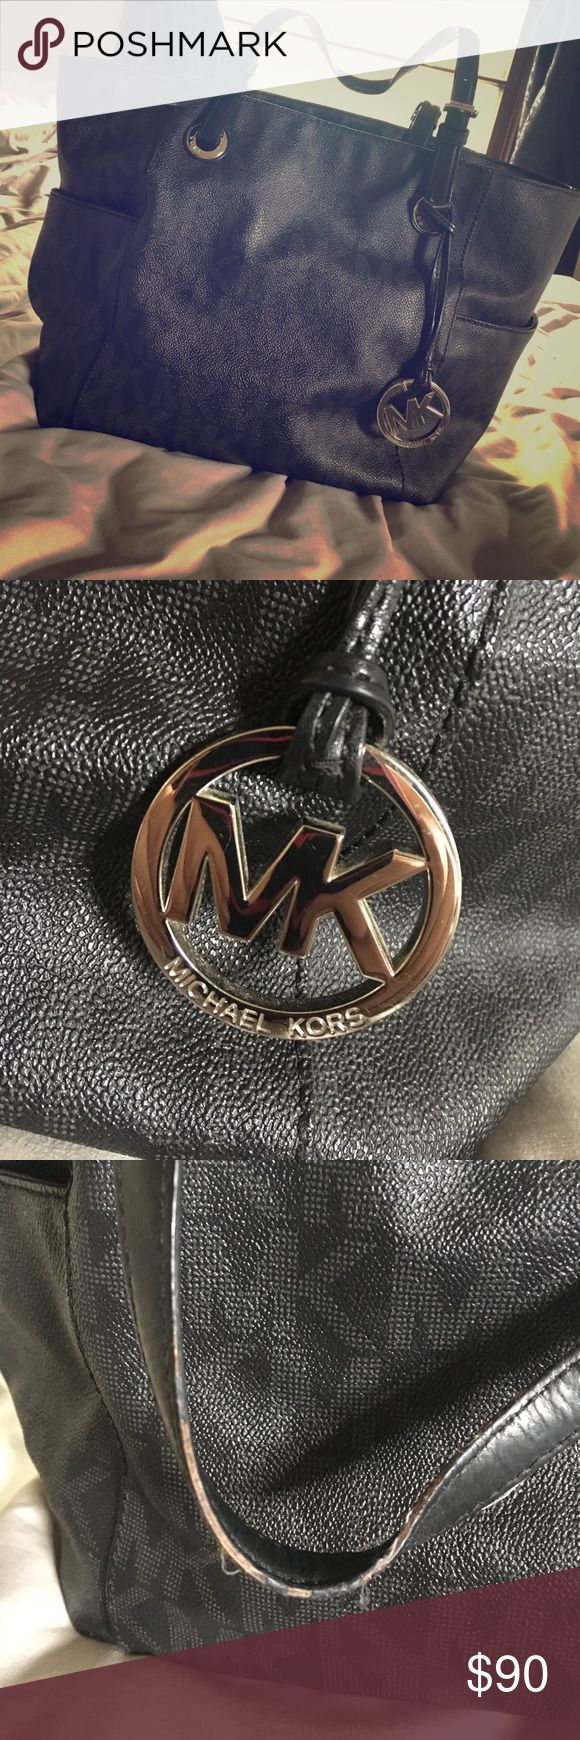 how to tell if your mk purse is authentic